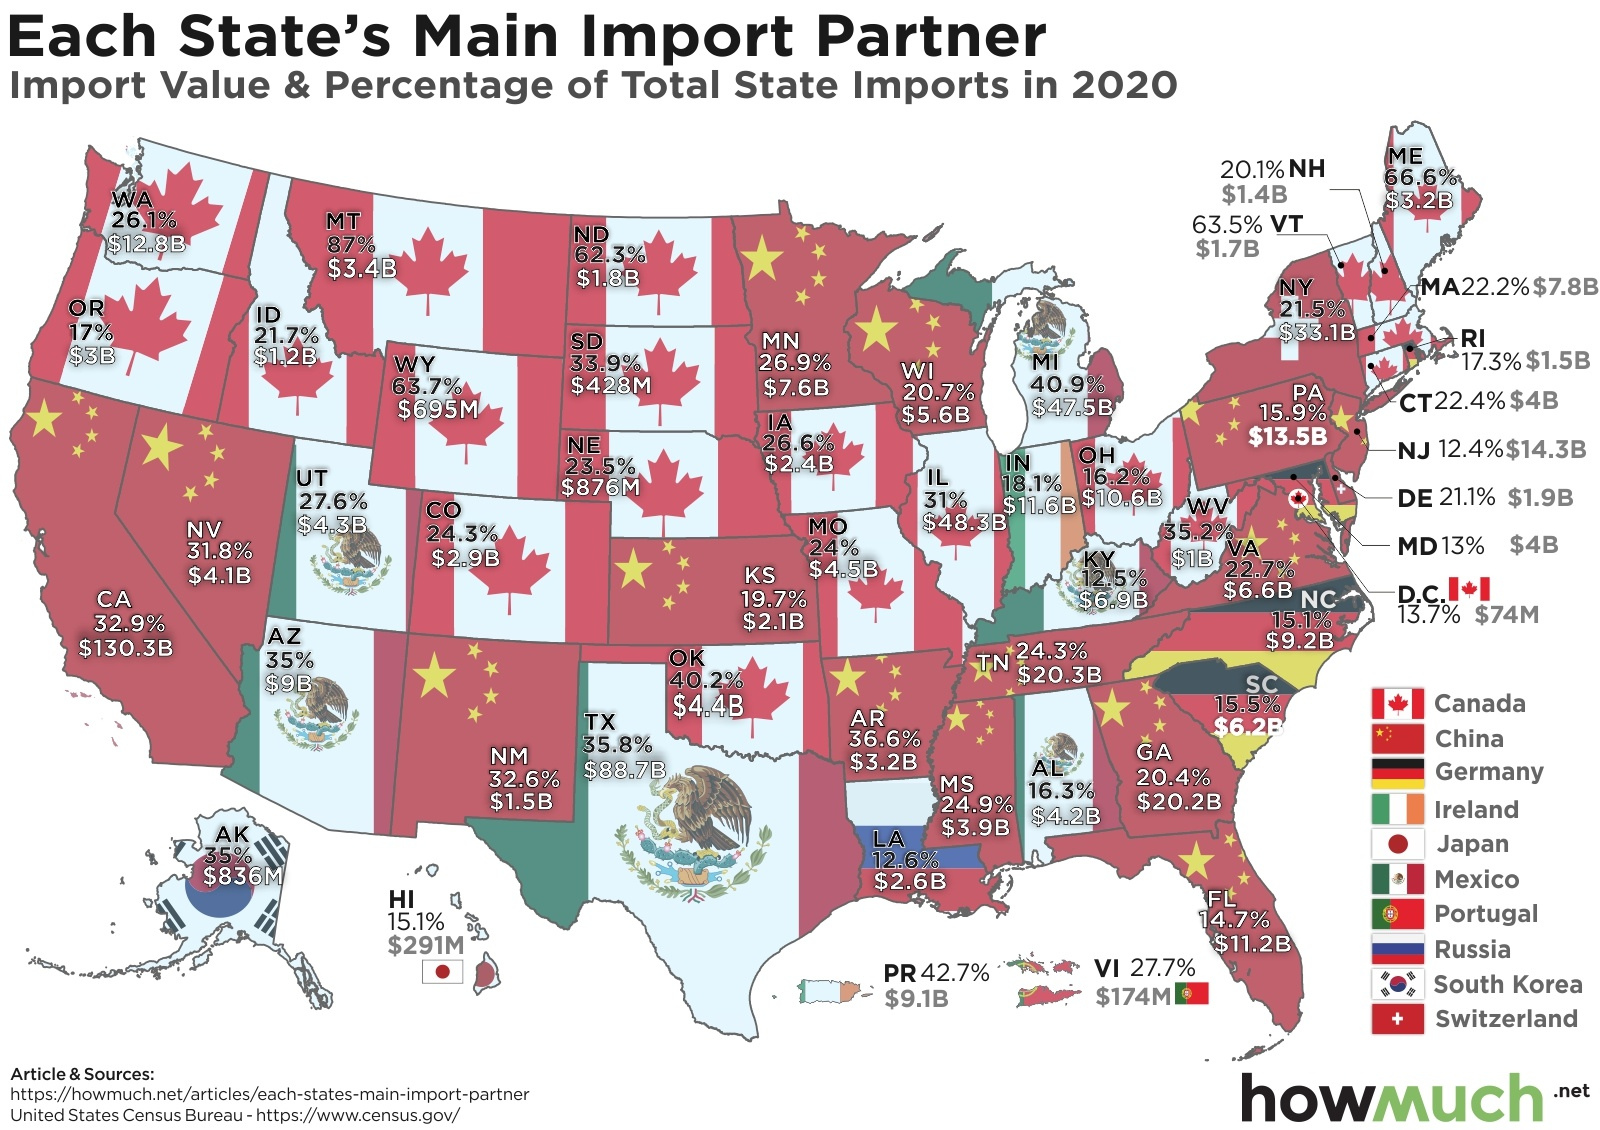 Each State's Main Import Partner Map